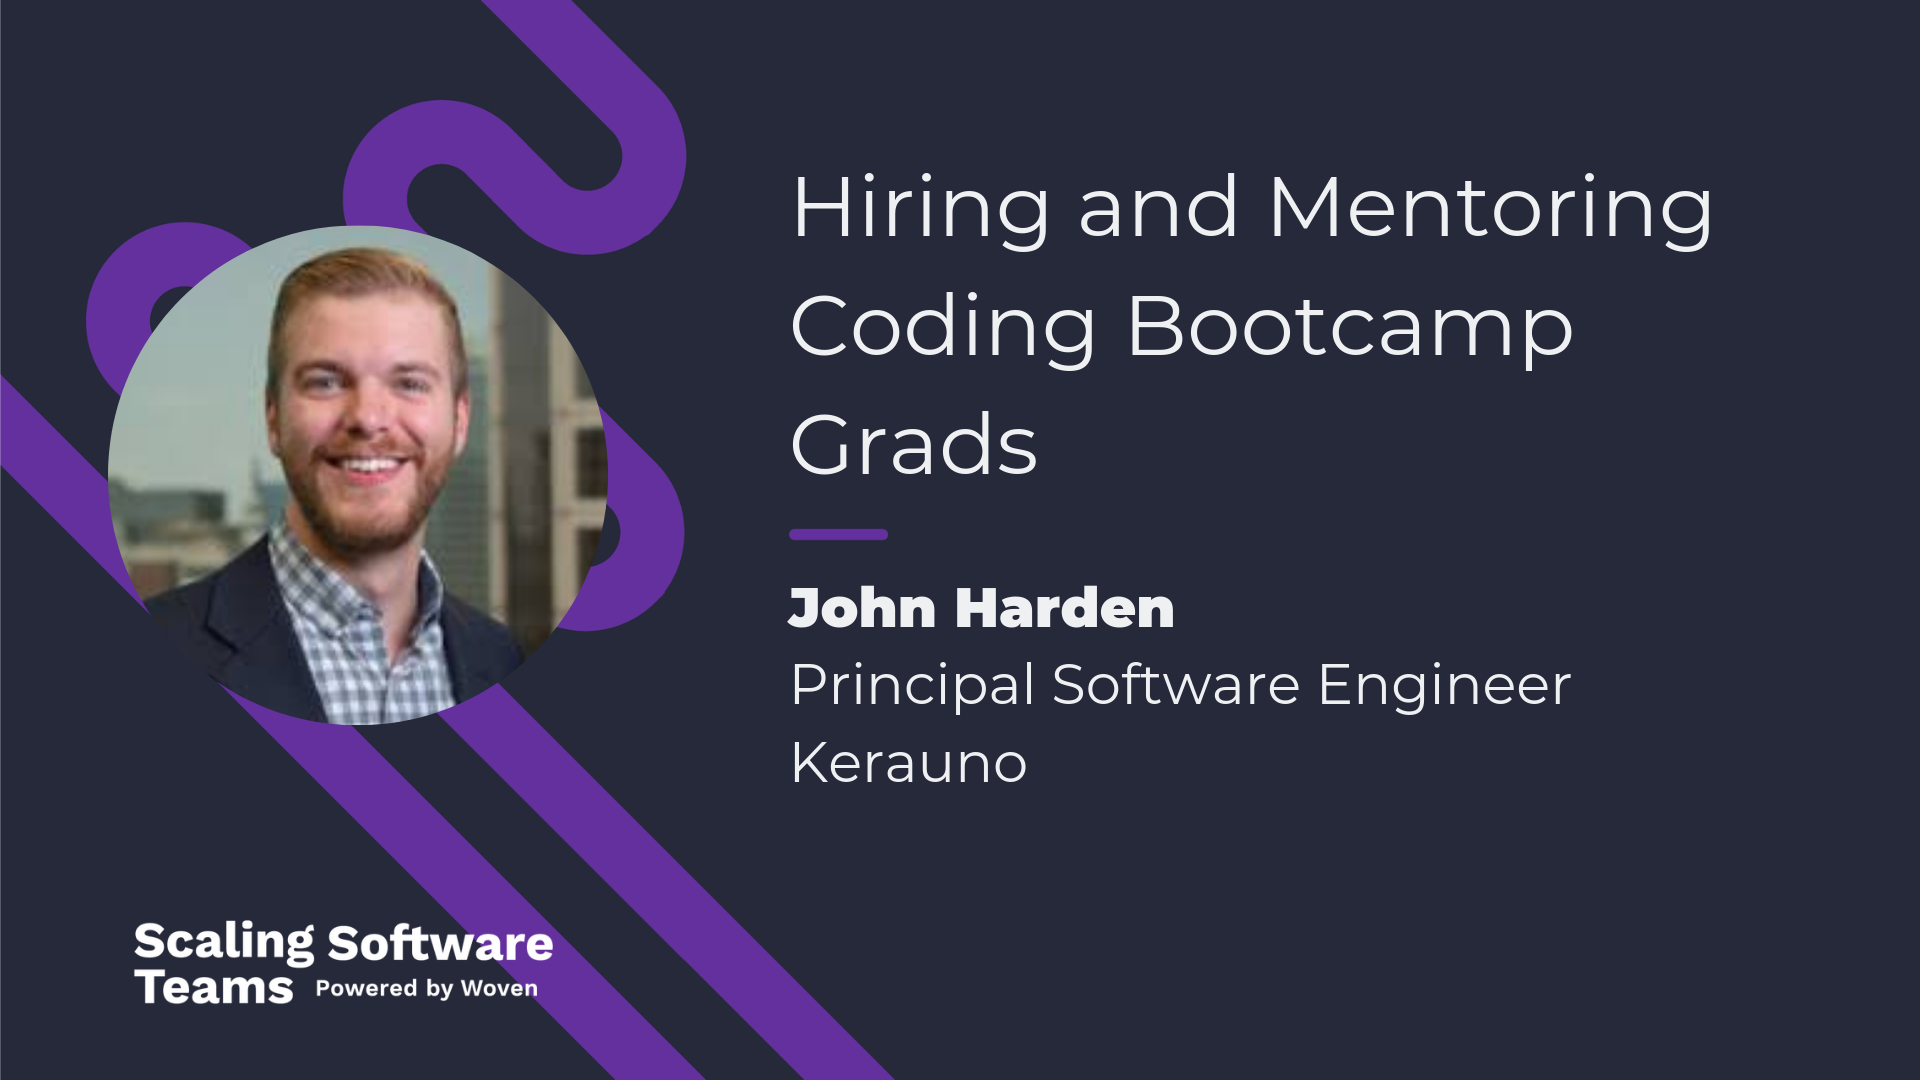 Hiring and Mentoring Coding Bootcamp Grads, With John Harden